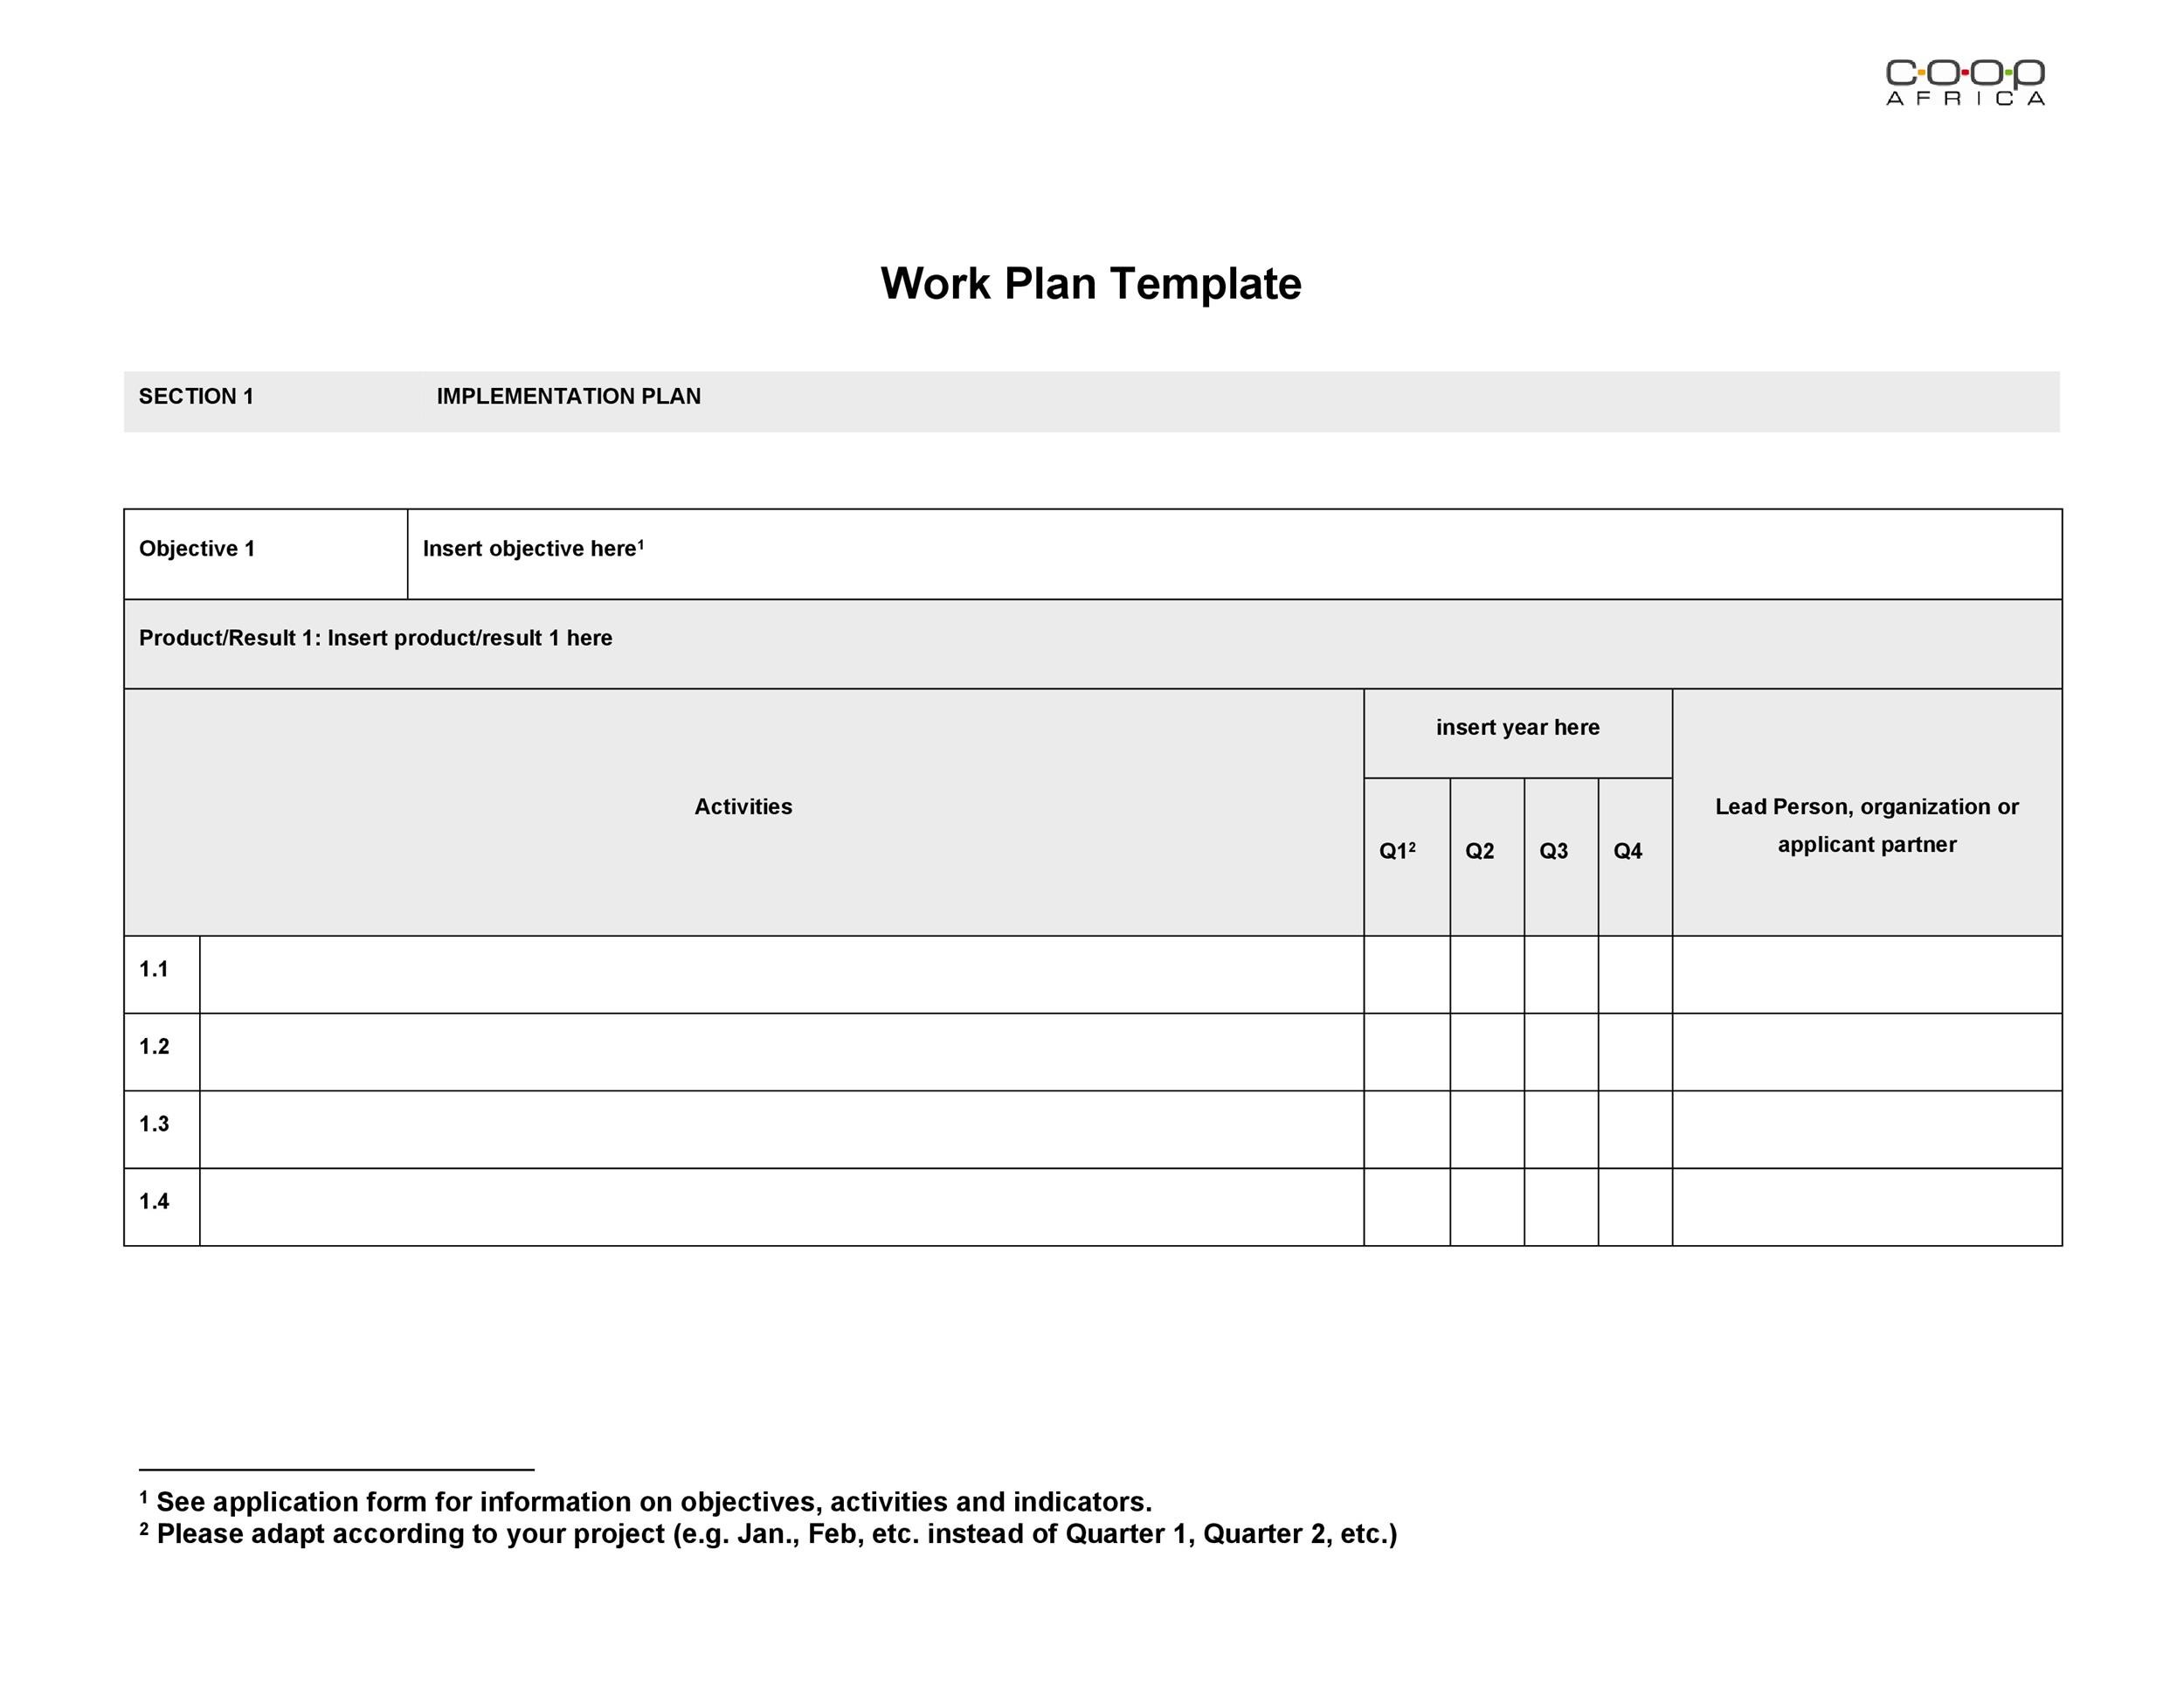 Work Plan - 40 Great Templates & Samples (Excel / Word) ᐅ ...